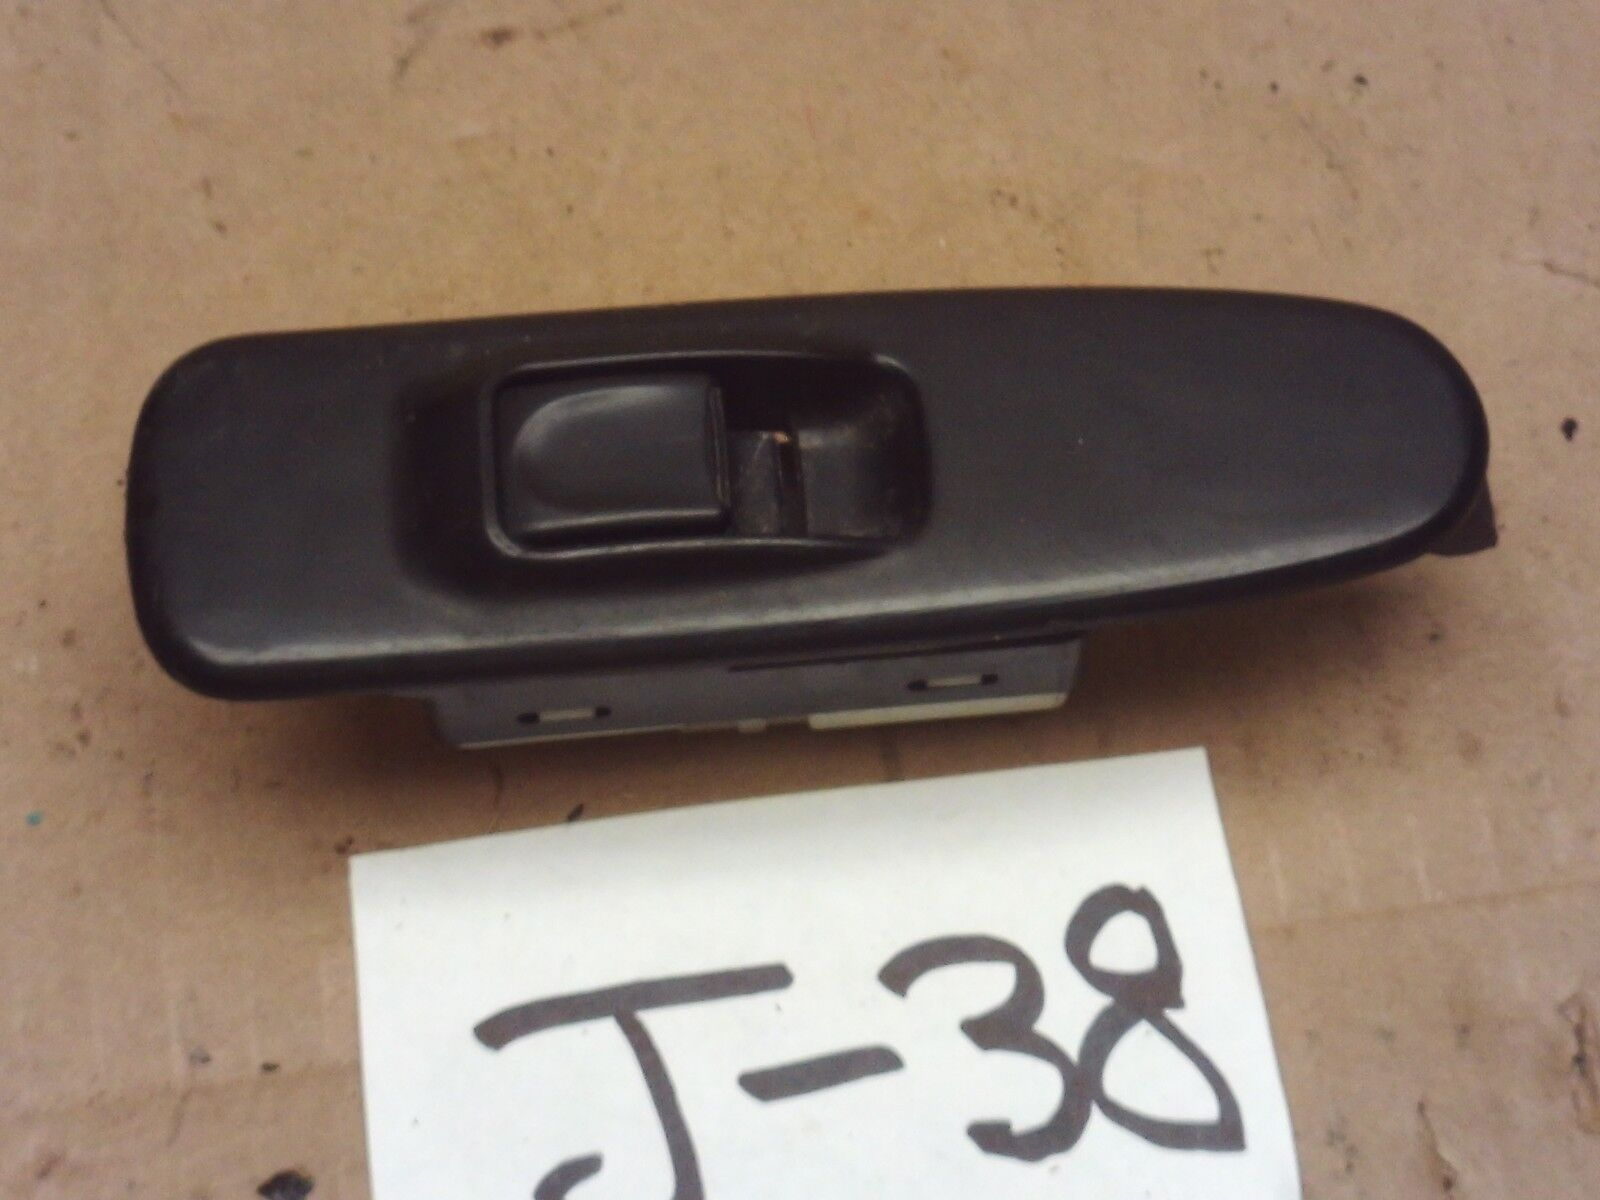 Used Isuzu Axiom Interior Door Panels And Parts For Sale 2004 Fuse Box Location 2002 Rear Panel Power Window Switch Trim Control Oem